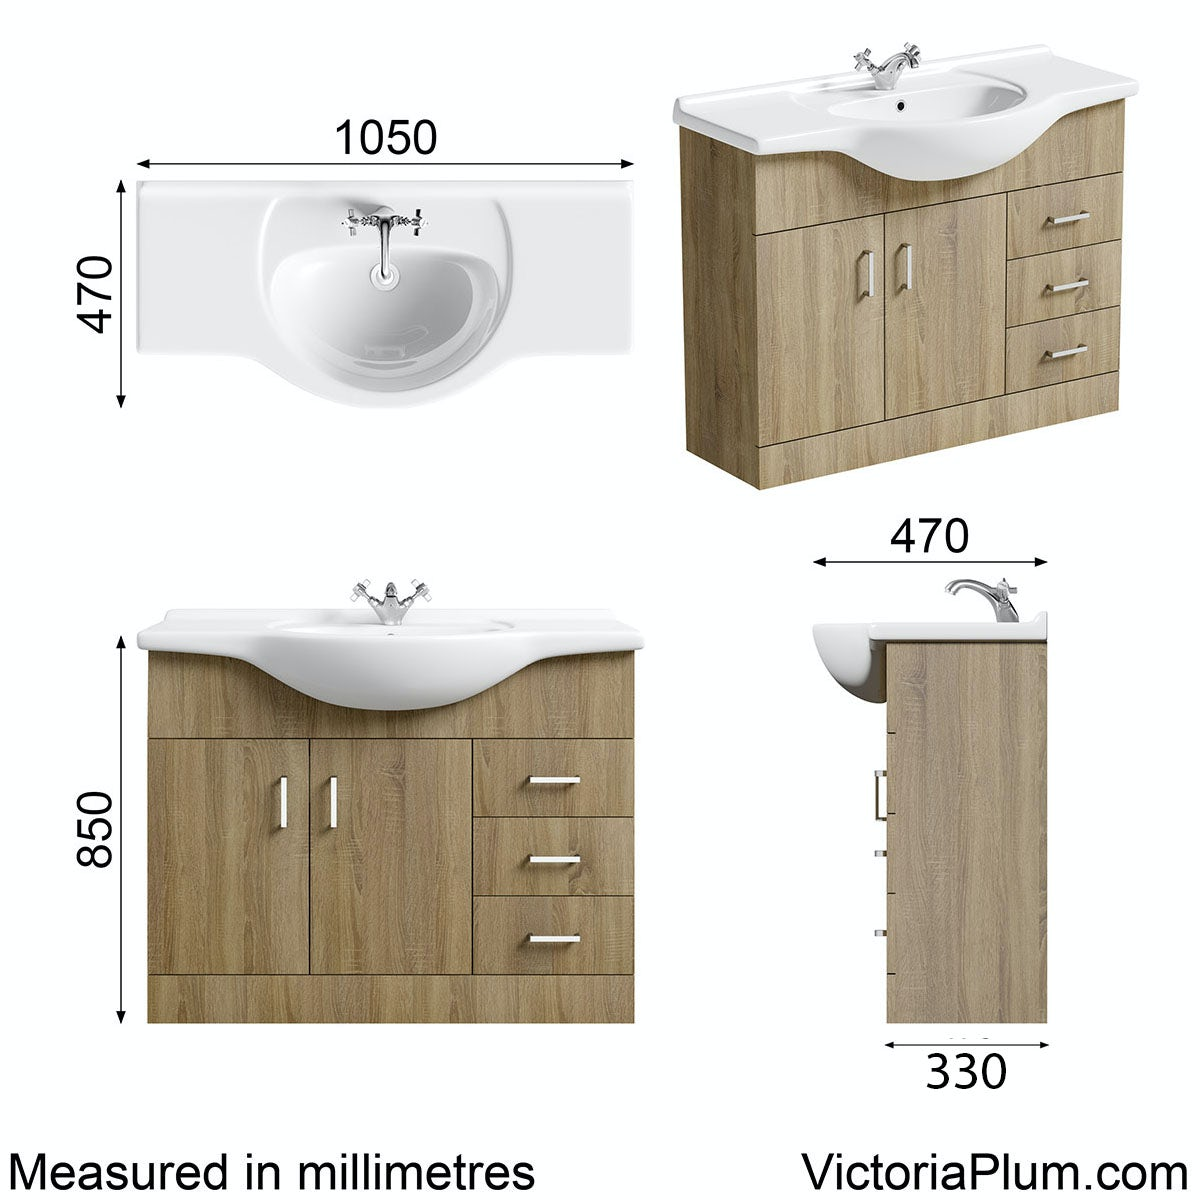 Dimensions for Orchard Eden oak vanity unit and basin 1050mm